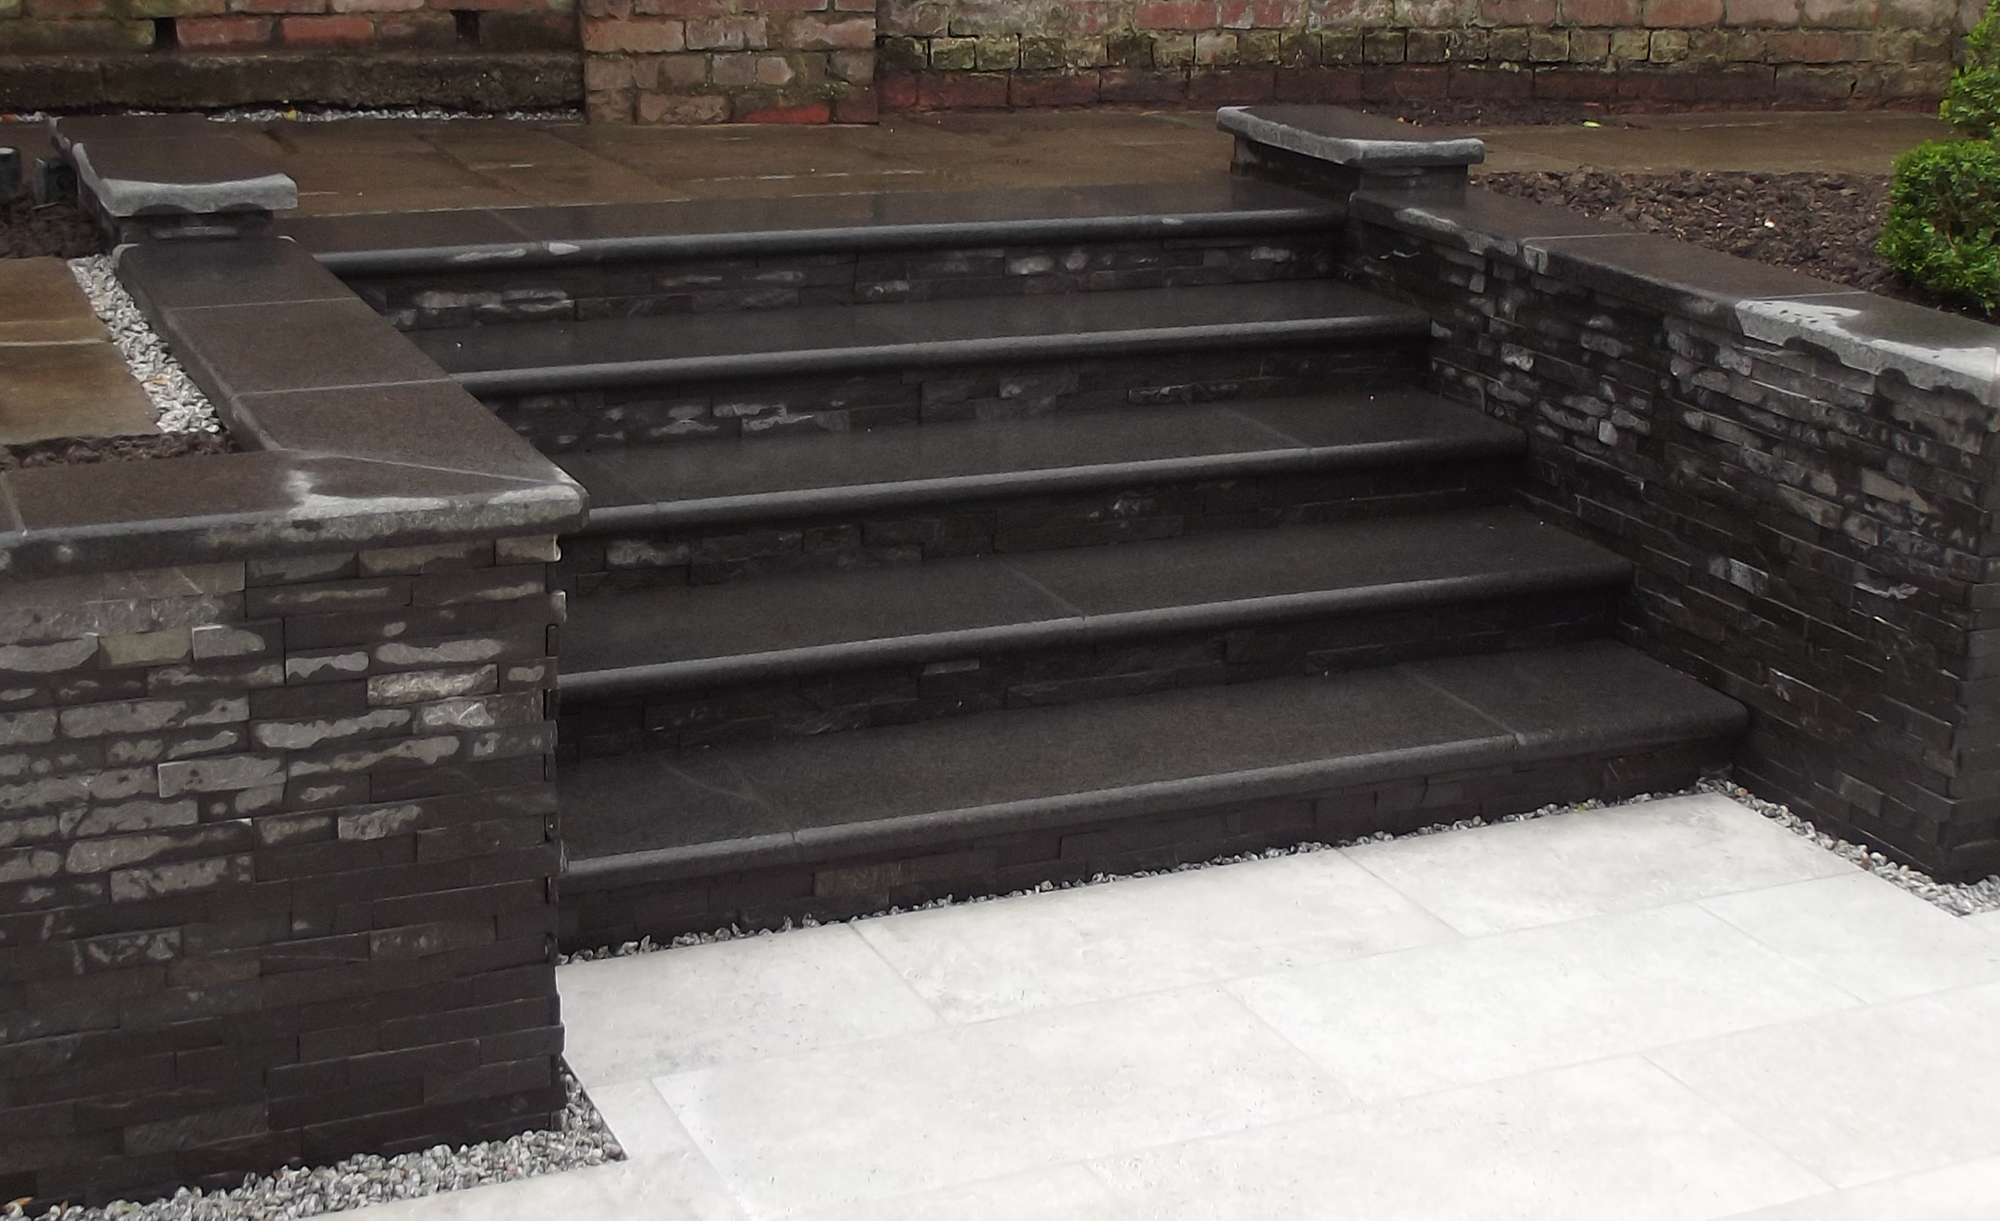 Private garden by Jeff Annannd featuring our Black Basalt Steps and Coping, Charcoal Tier and our Mijo Porcelain Paving in Amabile.